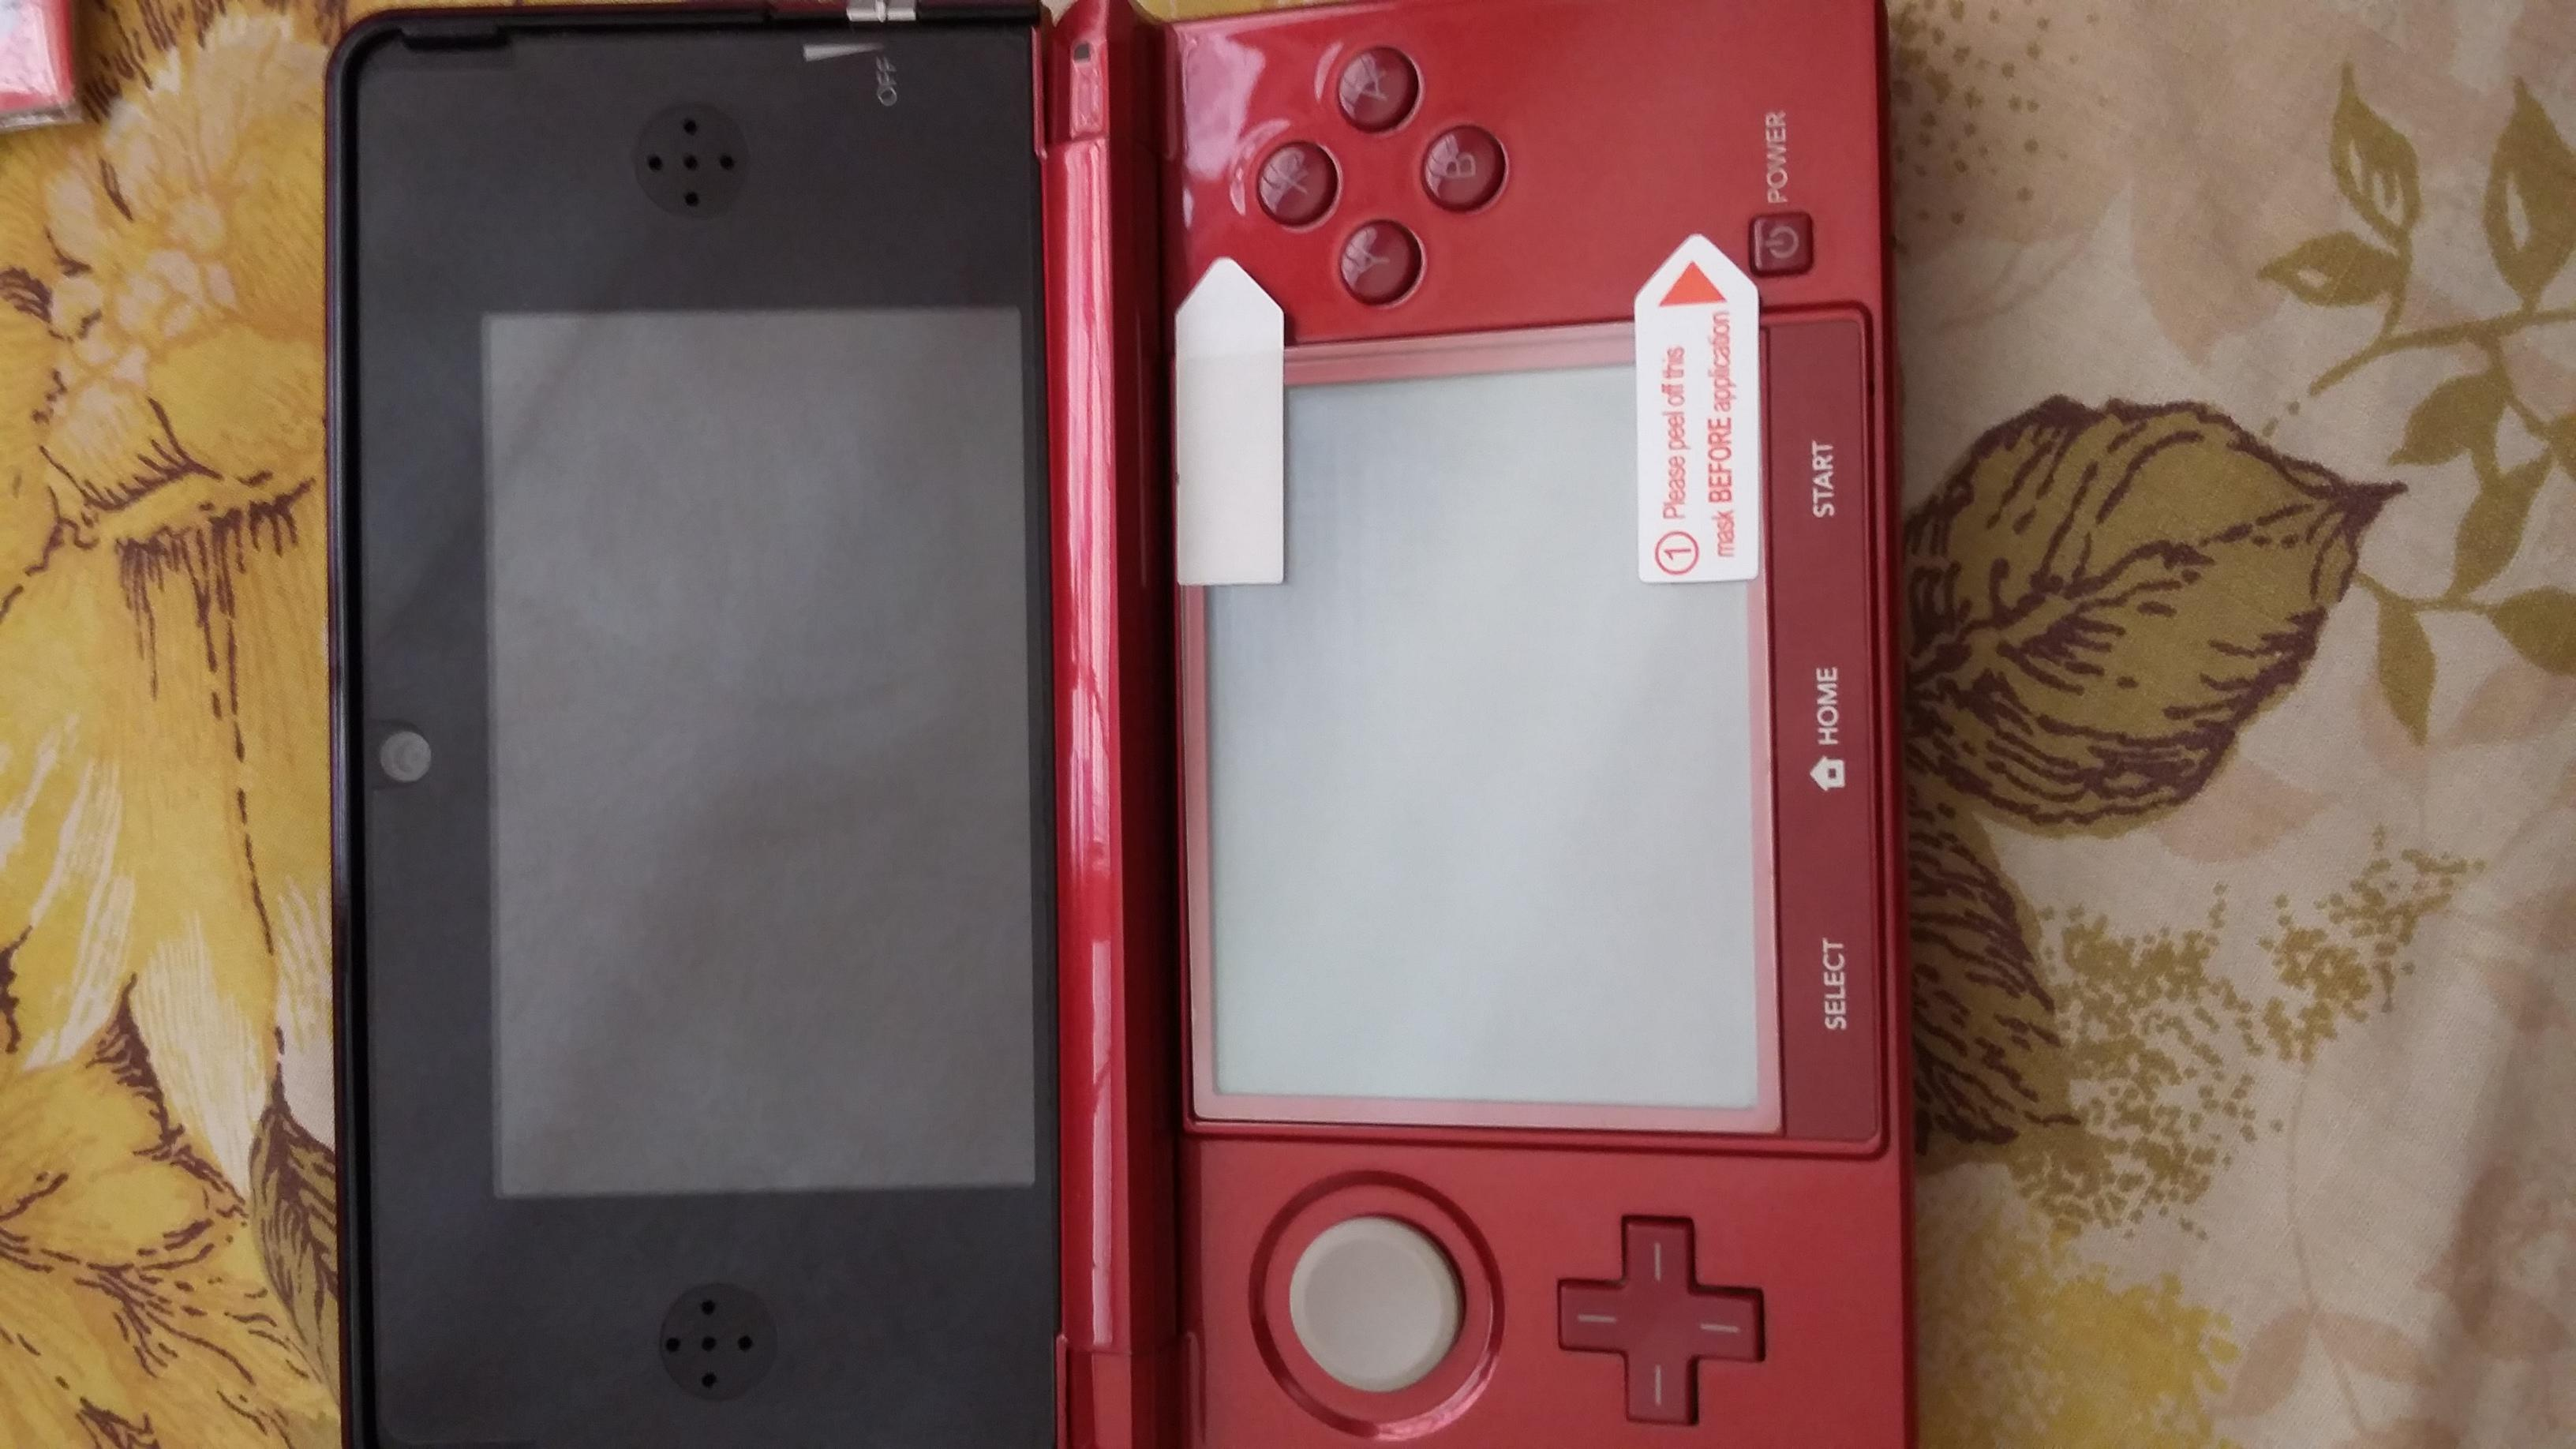 Hori Screen Protectors For 3ds New 2ds Xl Shopee Tempered Glass Ll Top Protector Is Touching The Bottom Edge Of Camera By Abit Too Edit But Seller Decided To Give Me A Full Refund My Order